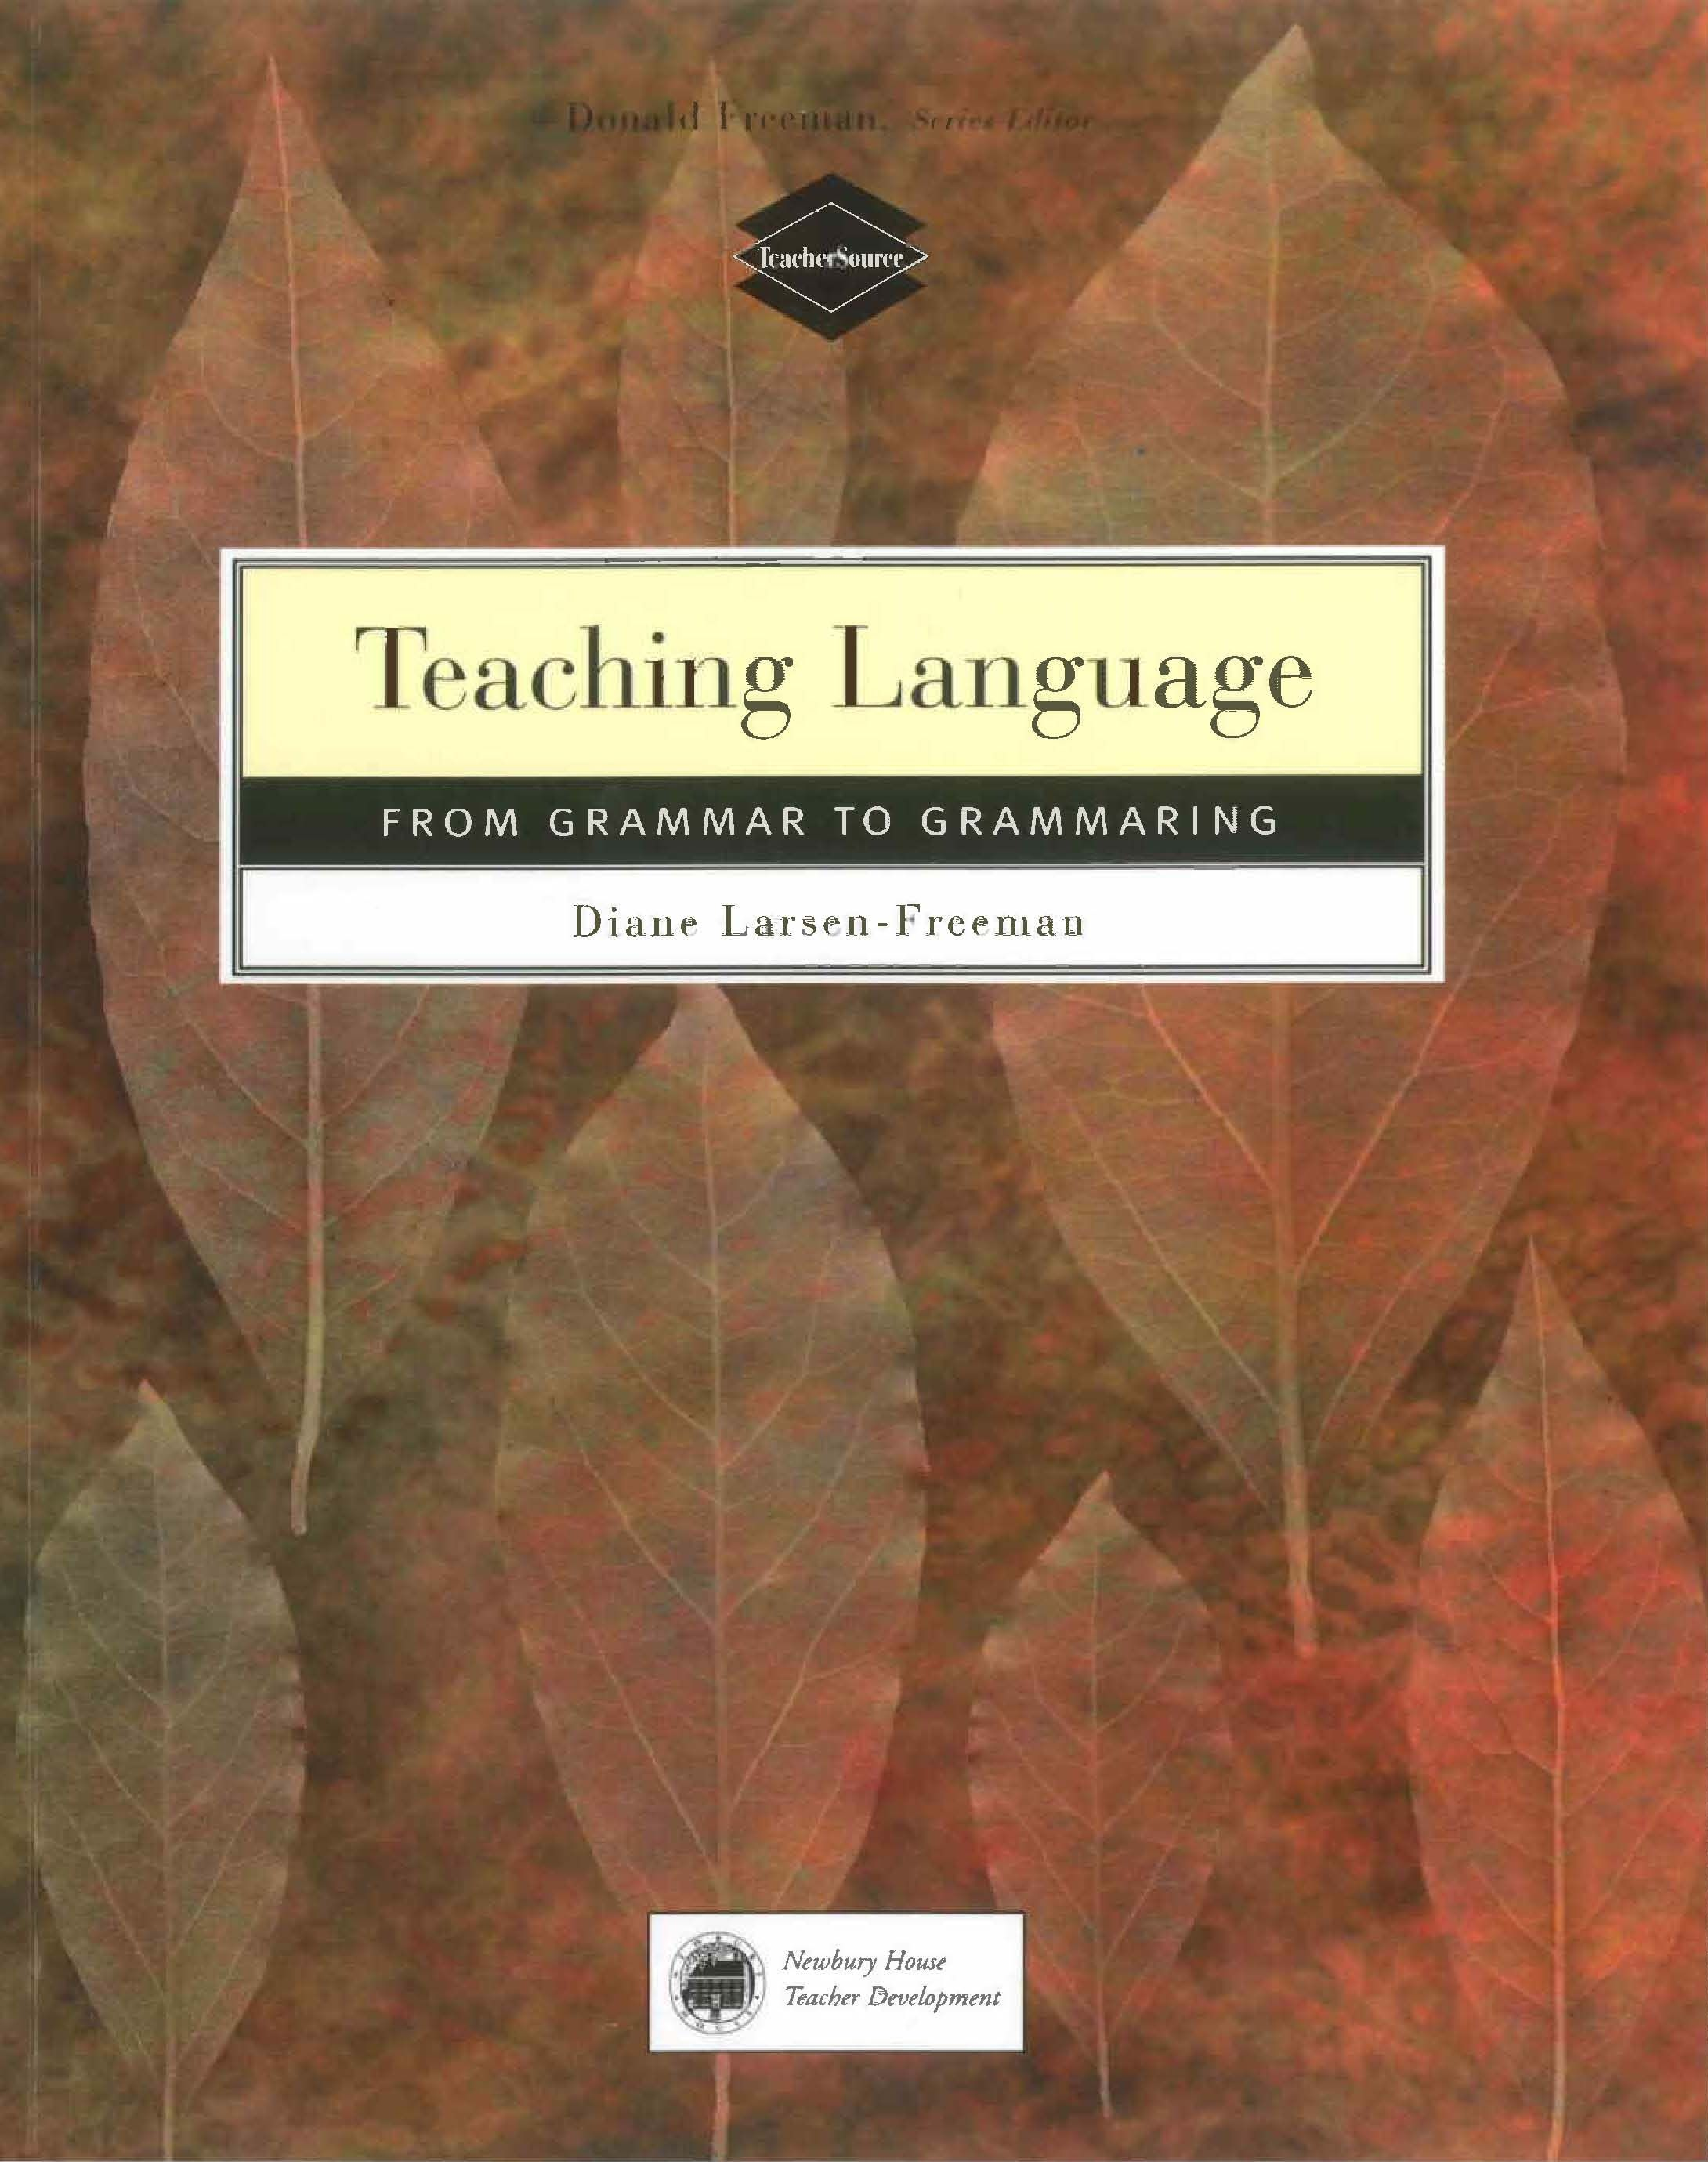 Картинки по запросу Teaching Language: From Grammar to Grammaring